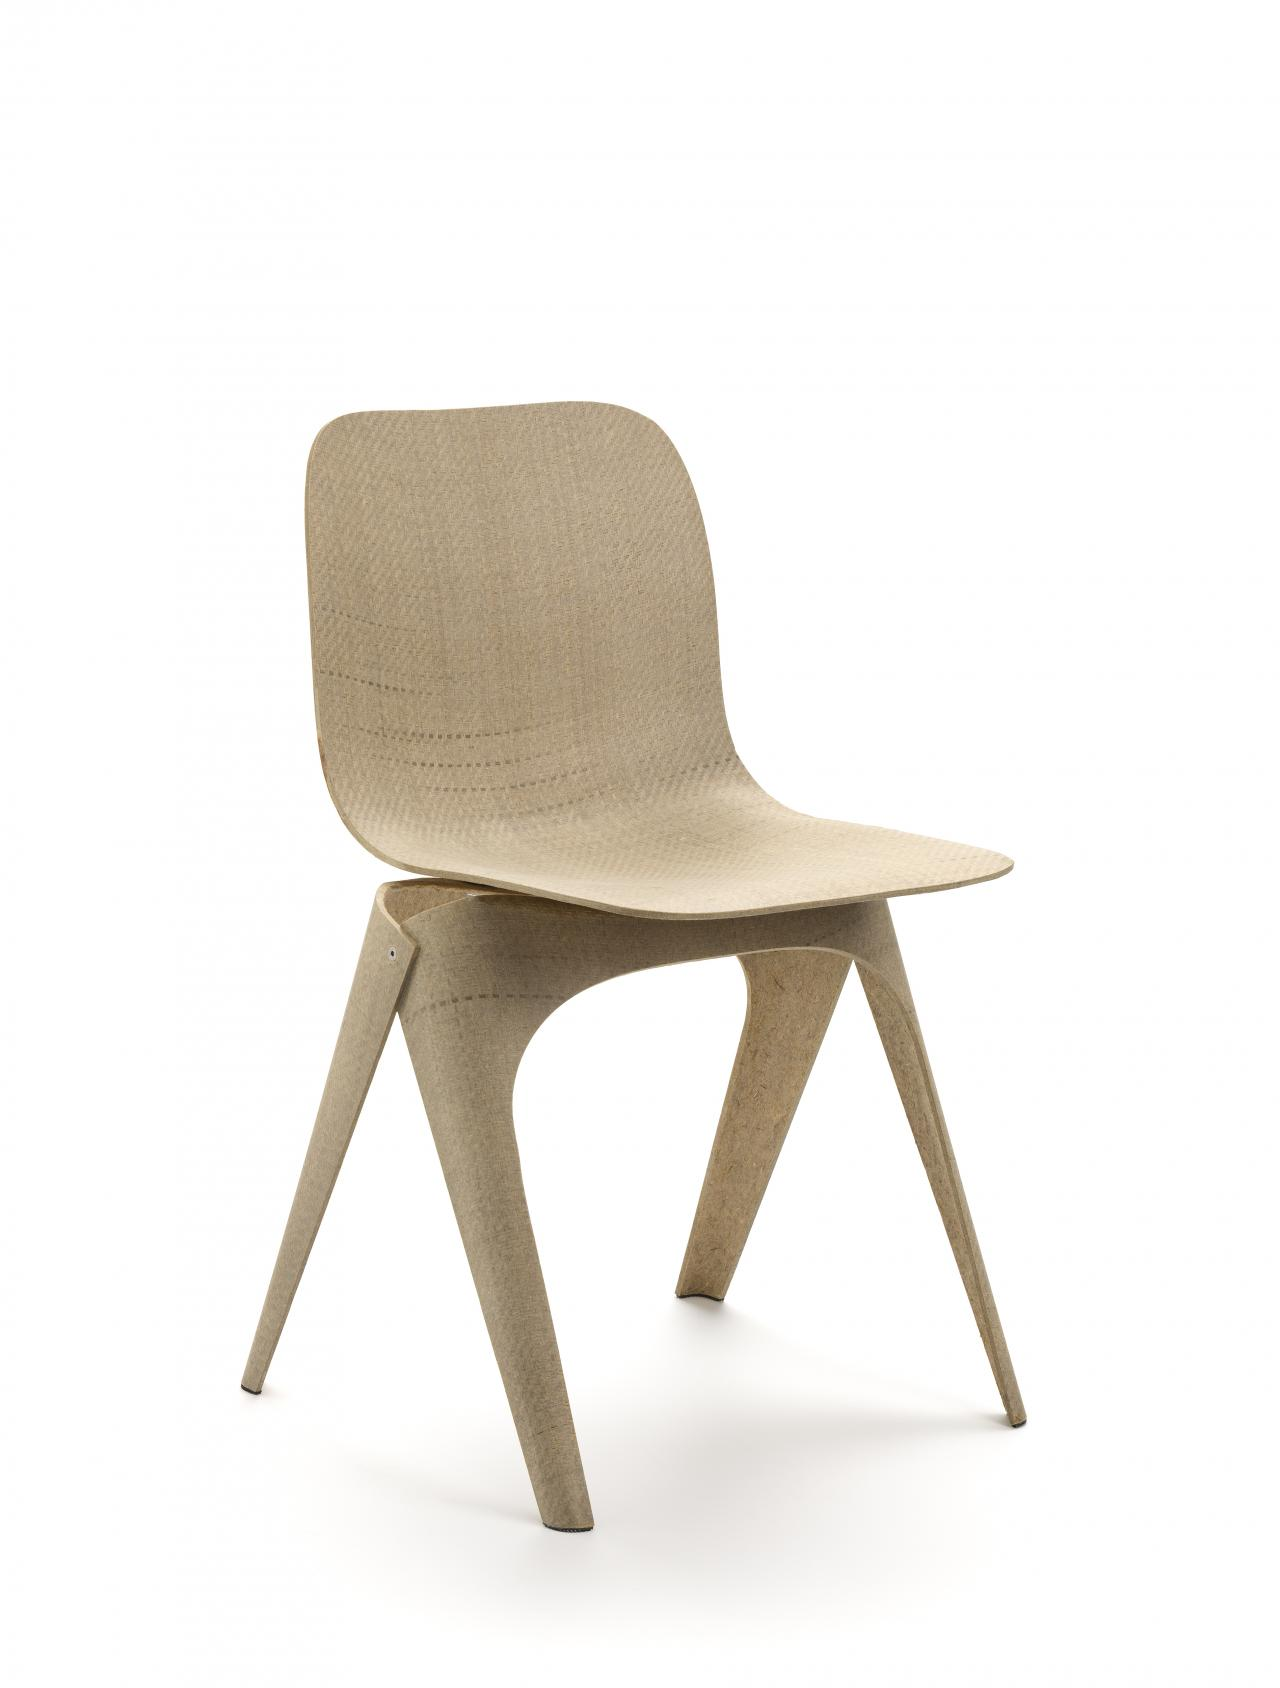 Flax chair